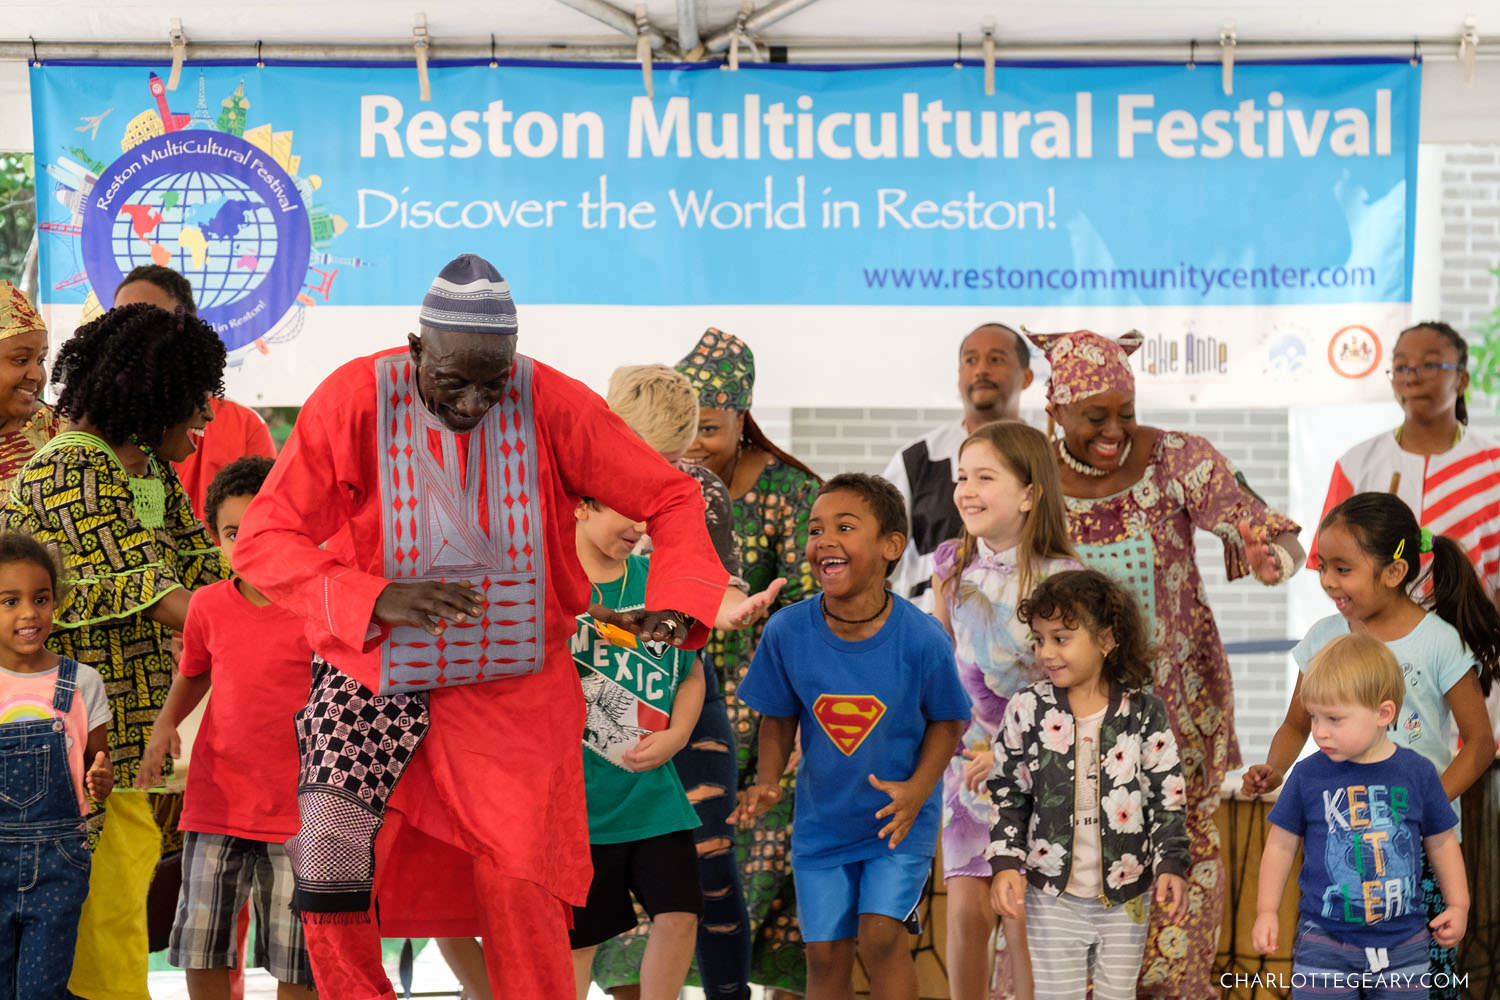 Dancers and kids at the Reston Multicultural Festival (Reston, Virginia)